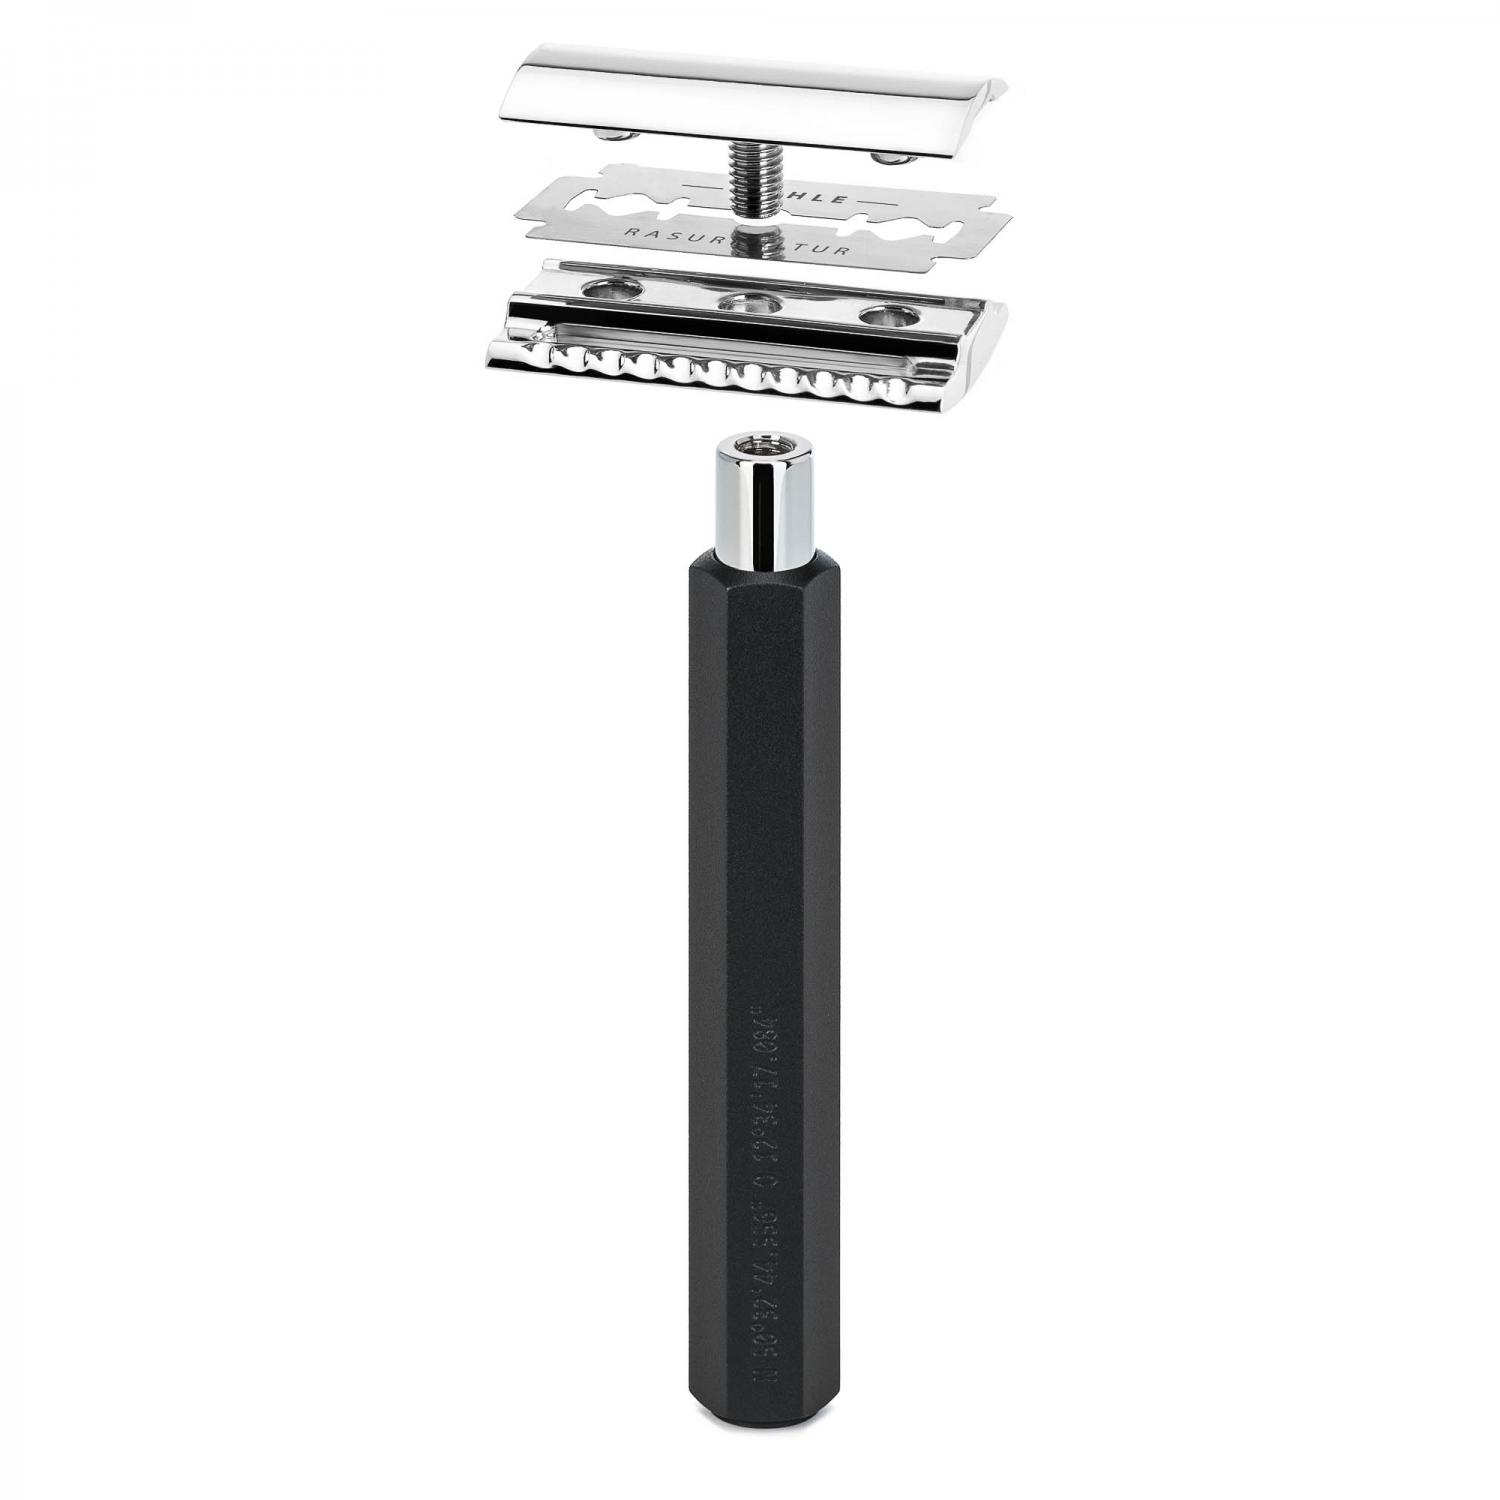 MUHLE HEXAGON Series Graphite Safety razor